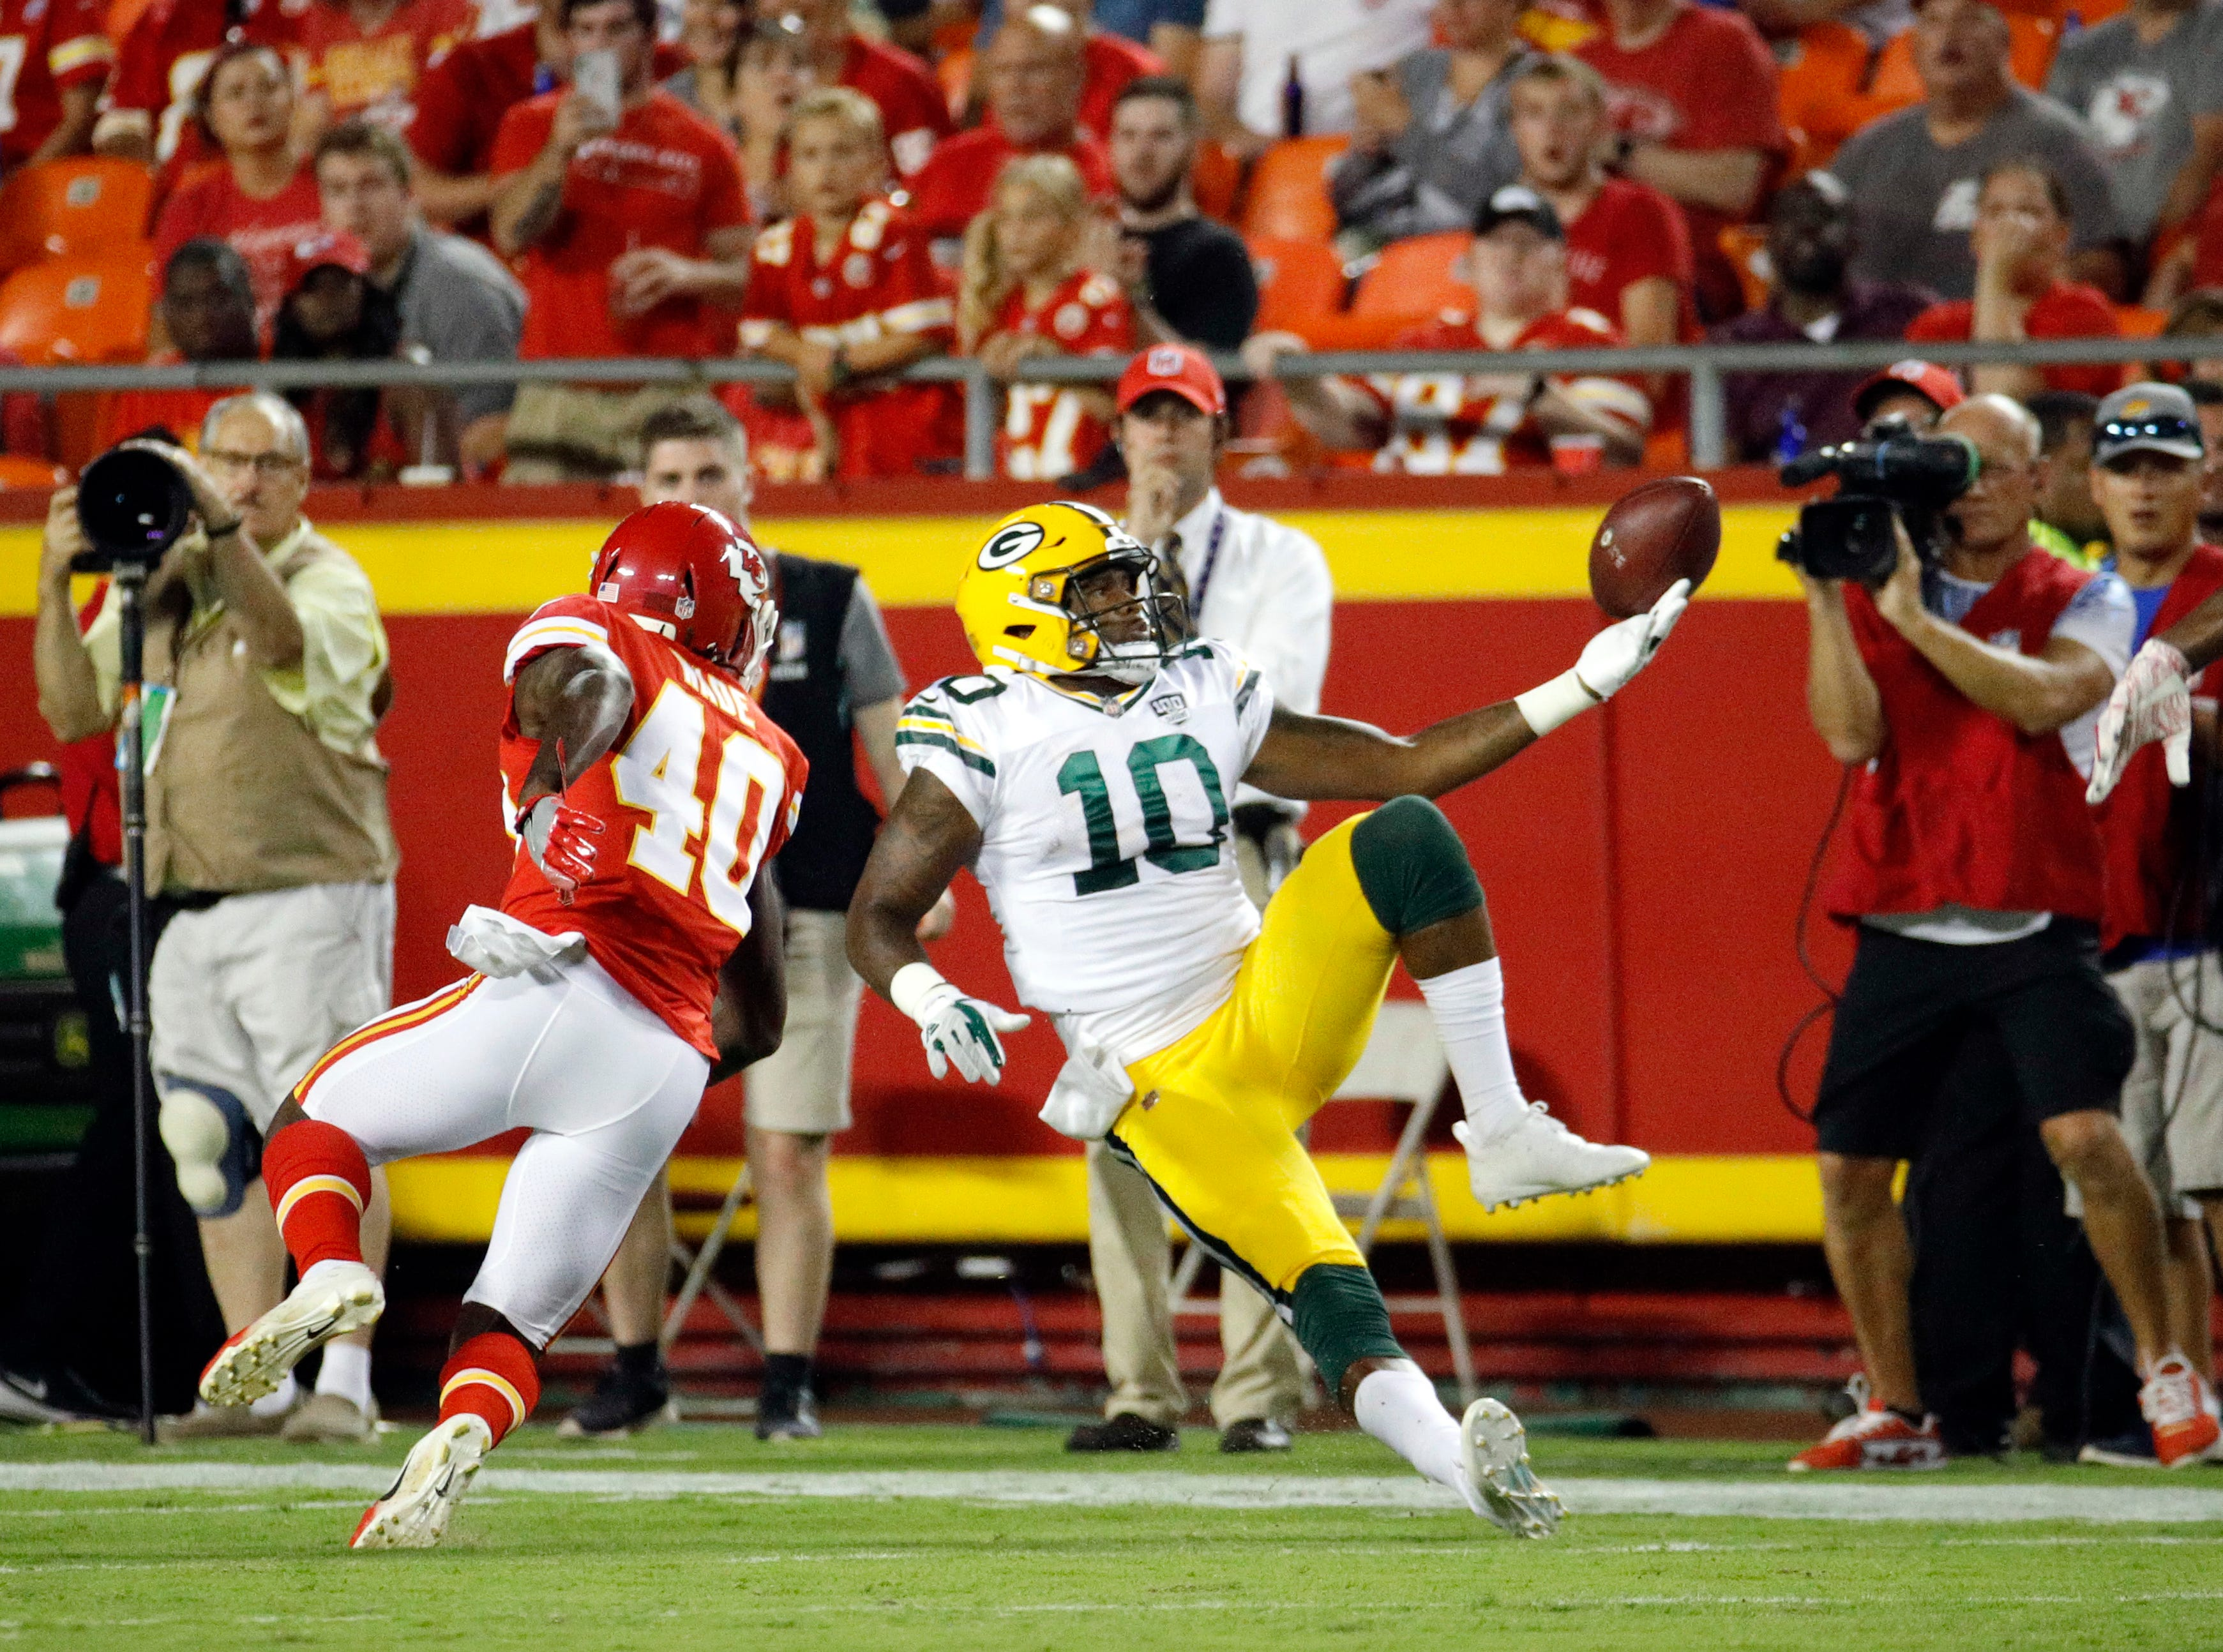 Green Bay Packers wide receiver DeAngelo Yancey (10) can't make the catch against the defense of Kansas City Chiefs cornerback D'Montre Wade (40) during the first half of an NFL preseason football game in Kansas City, Mo., Thursday, Aug. 30, 2018.